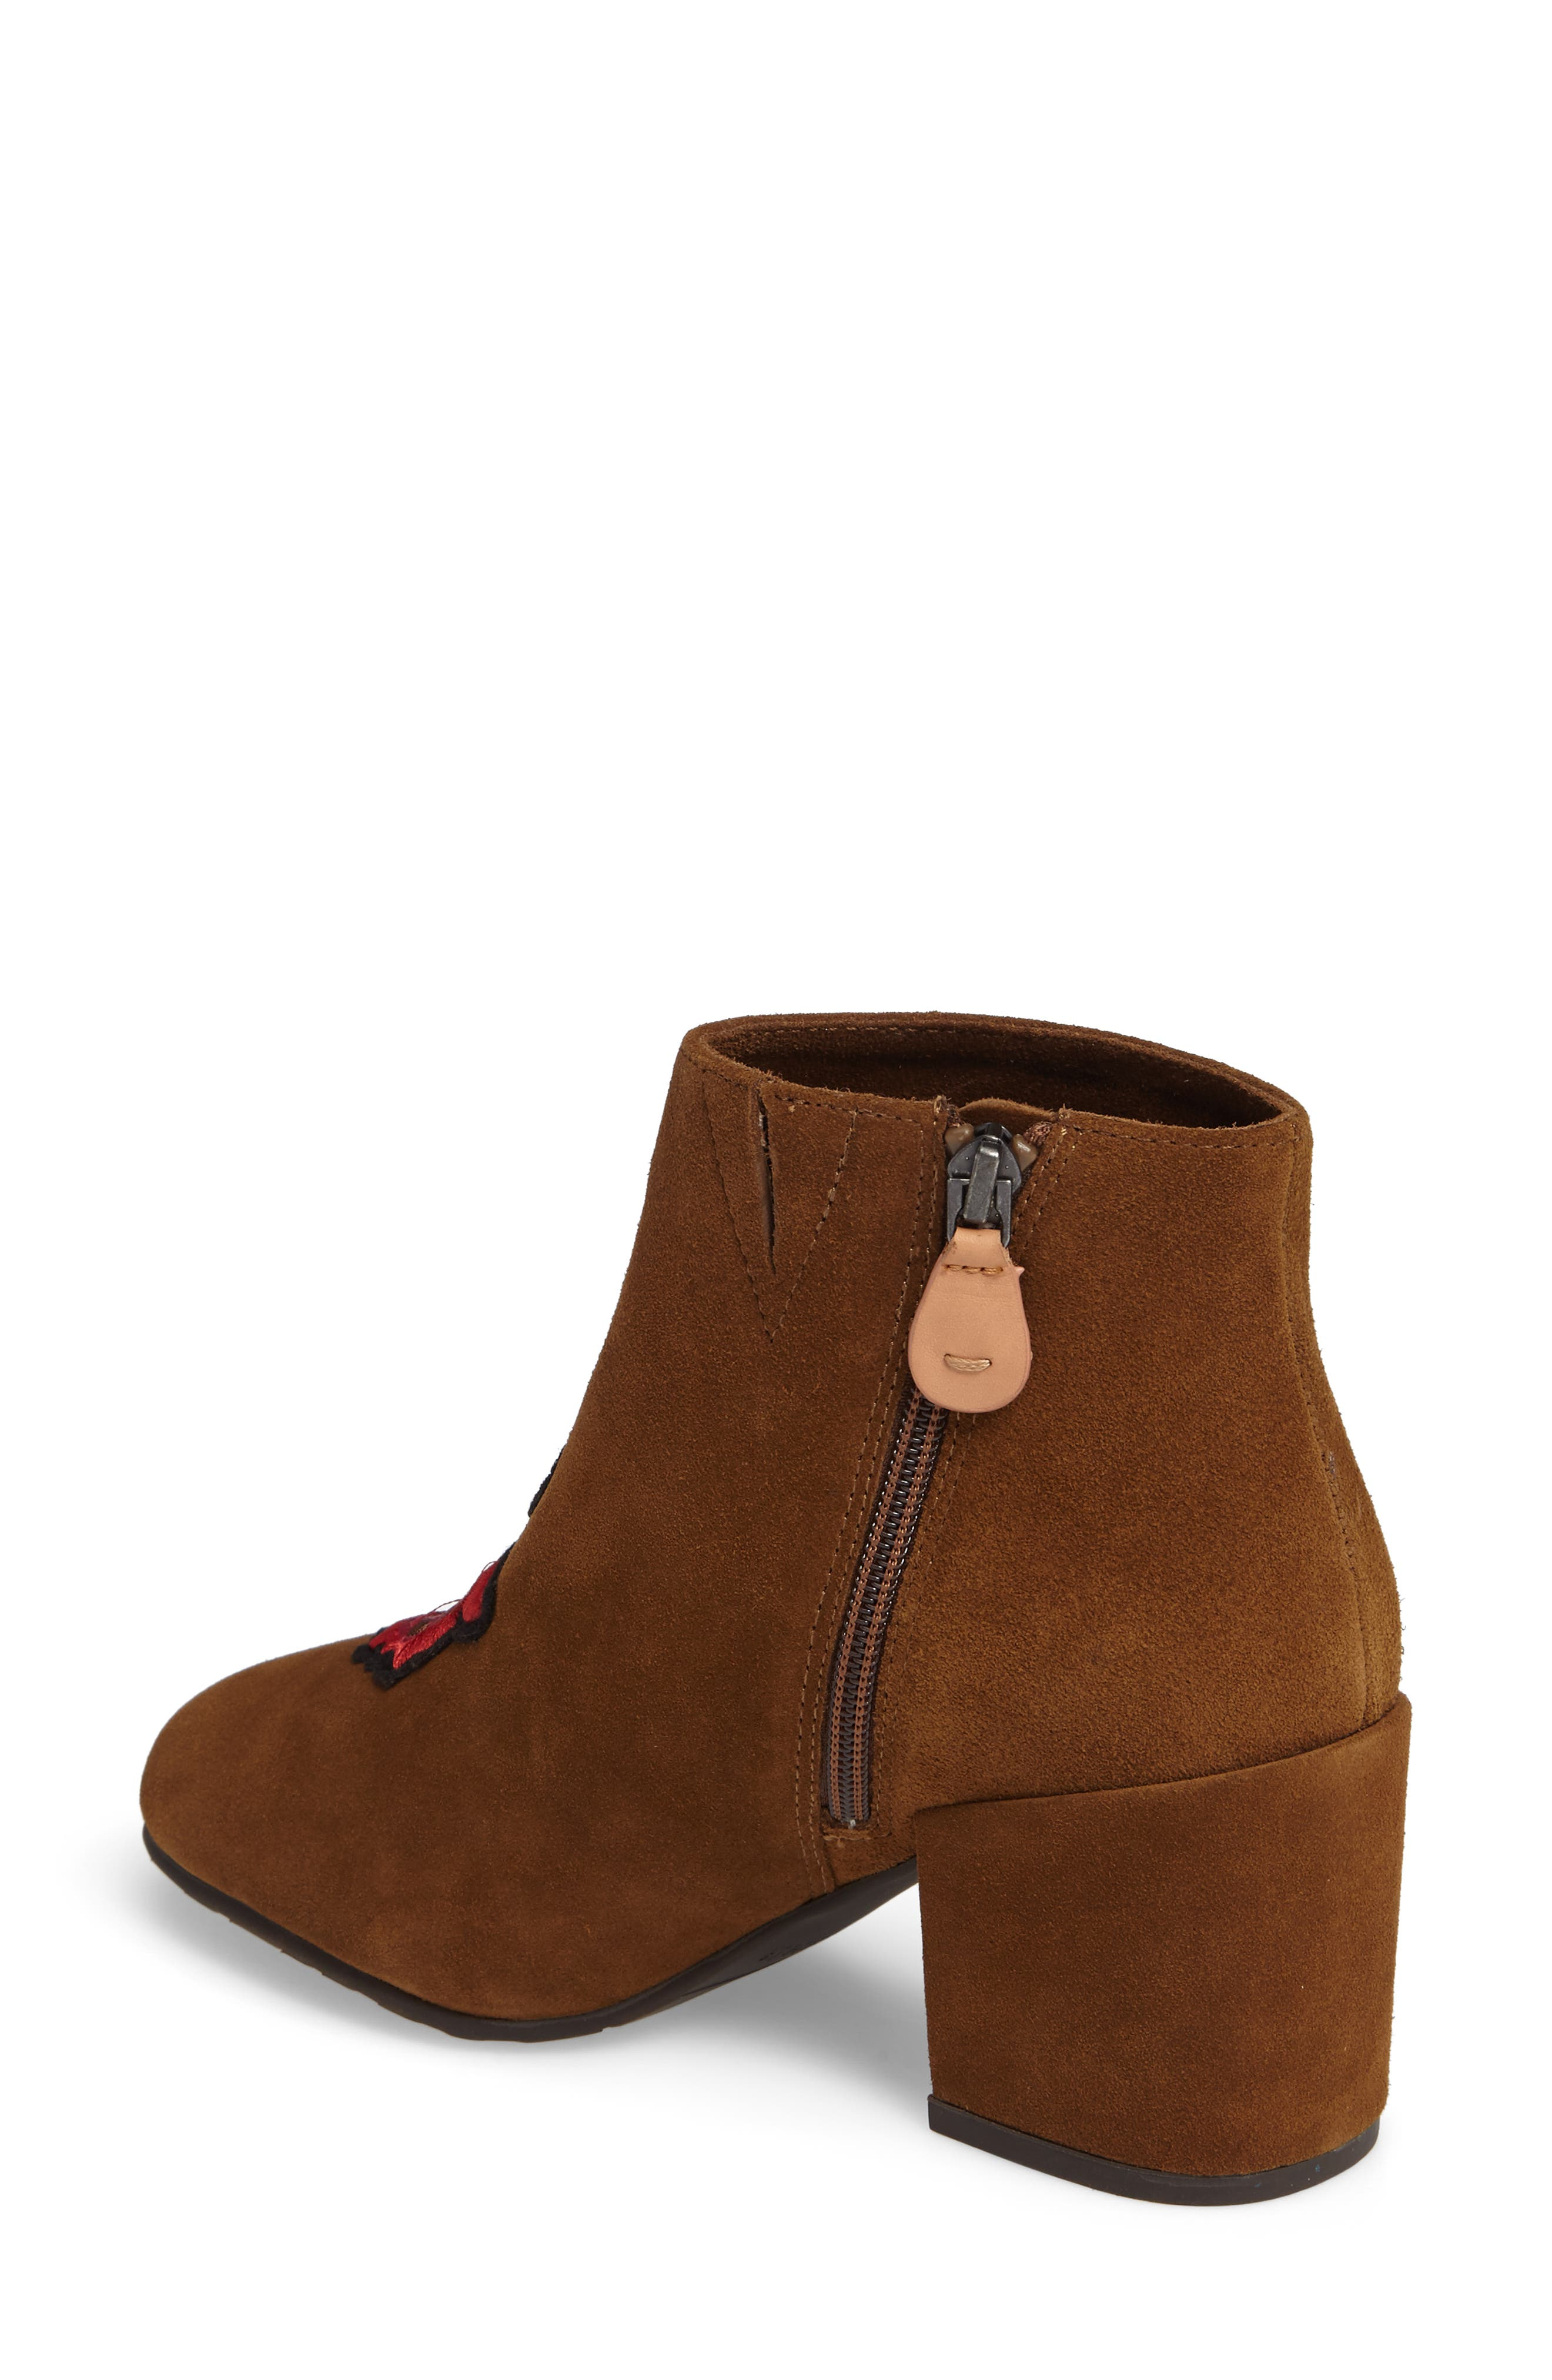 GENTLE SOULS BY KENNETH COLE, Blaise Patches Bootie, Alternate thumbnail 2, color, WALNUT SUEDE